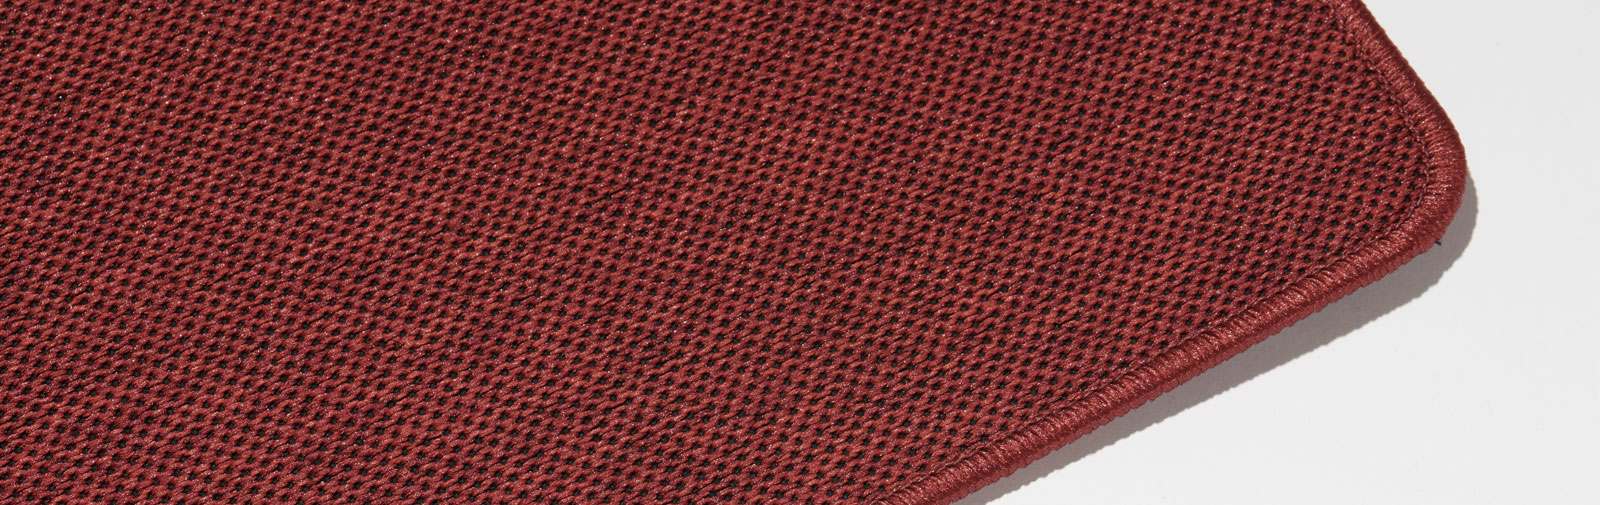 church carpet Wave color code 101 color red